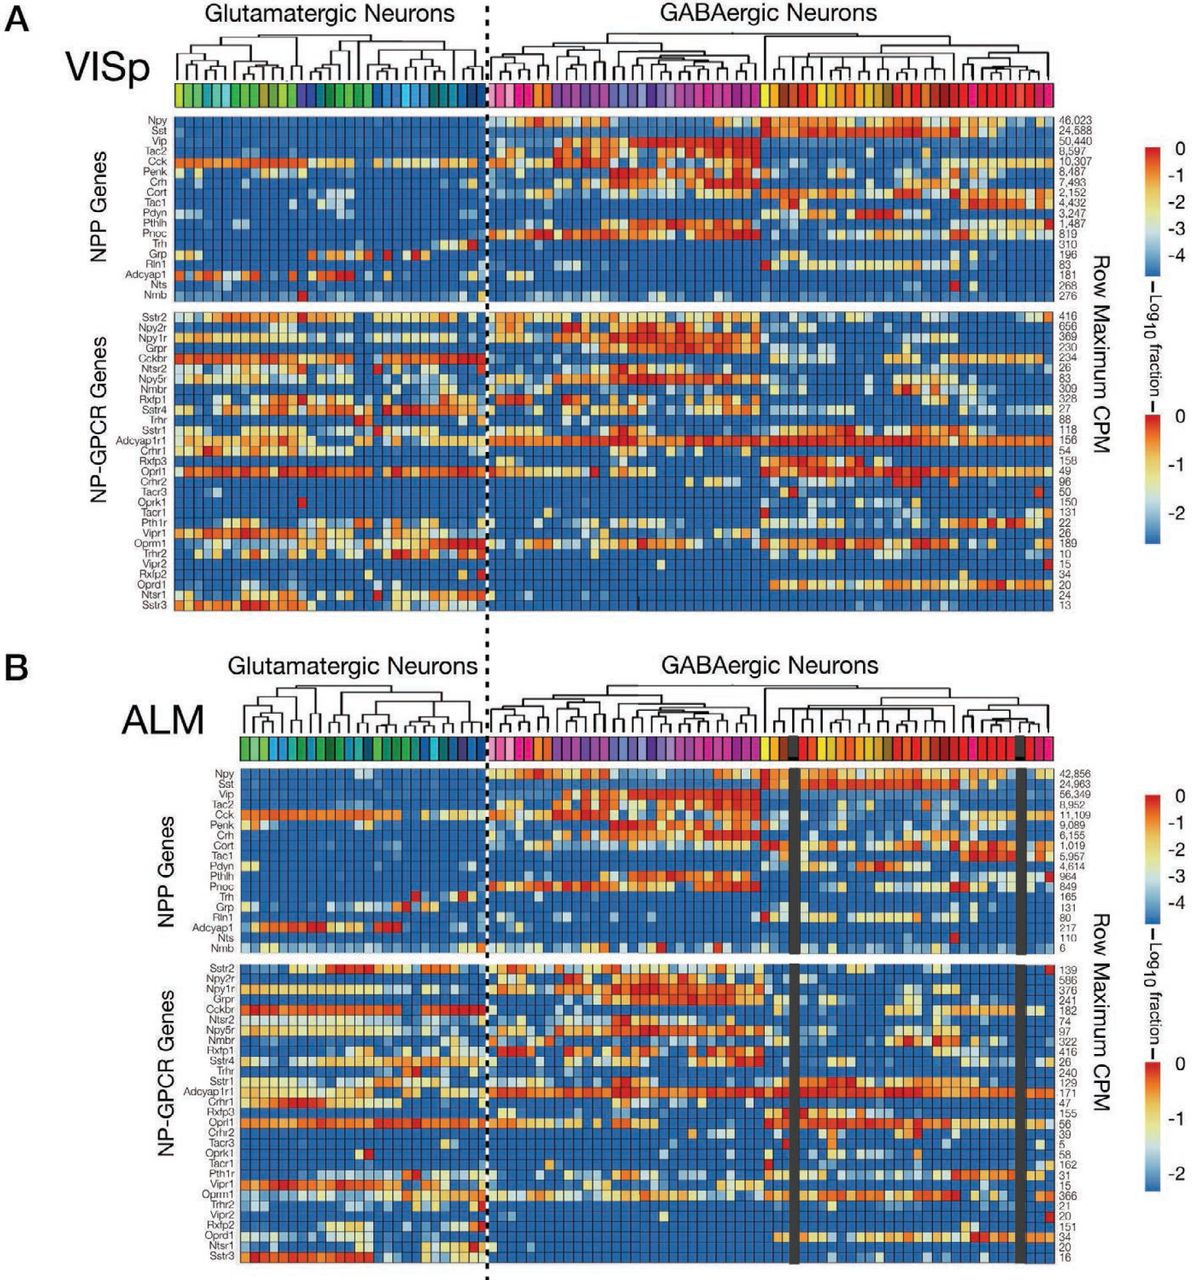 Single-Cell Transcriptomic Evidence for Dense Intracortical